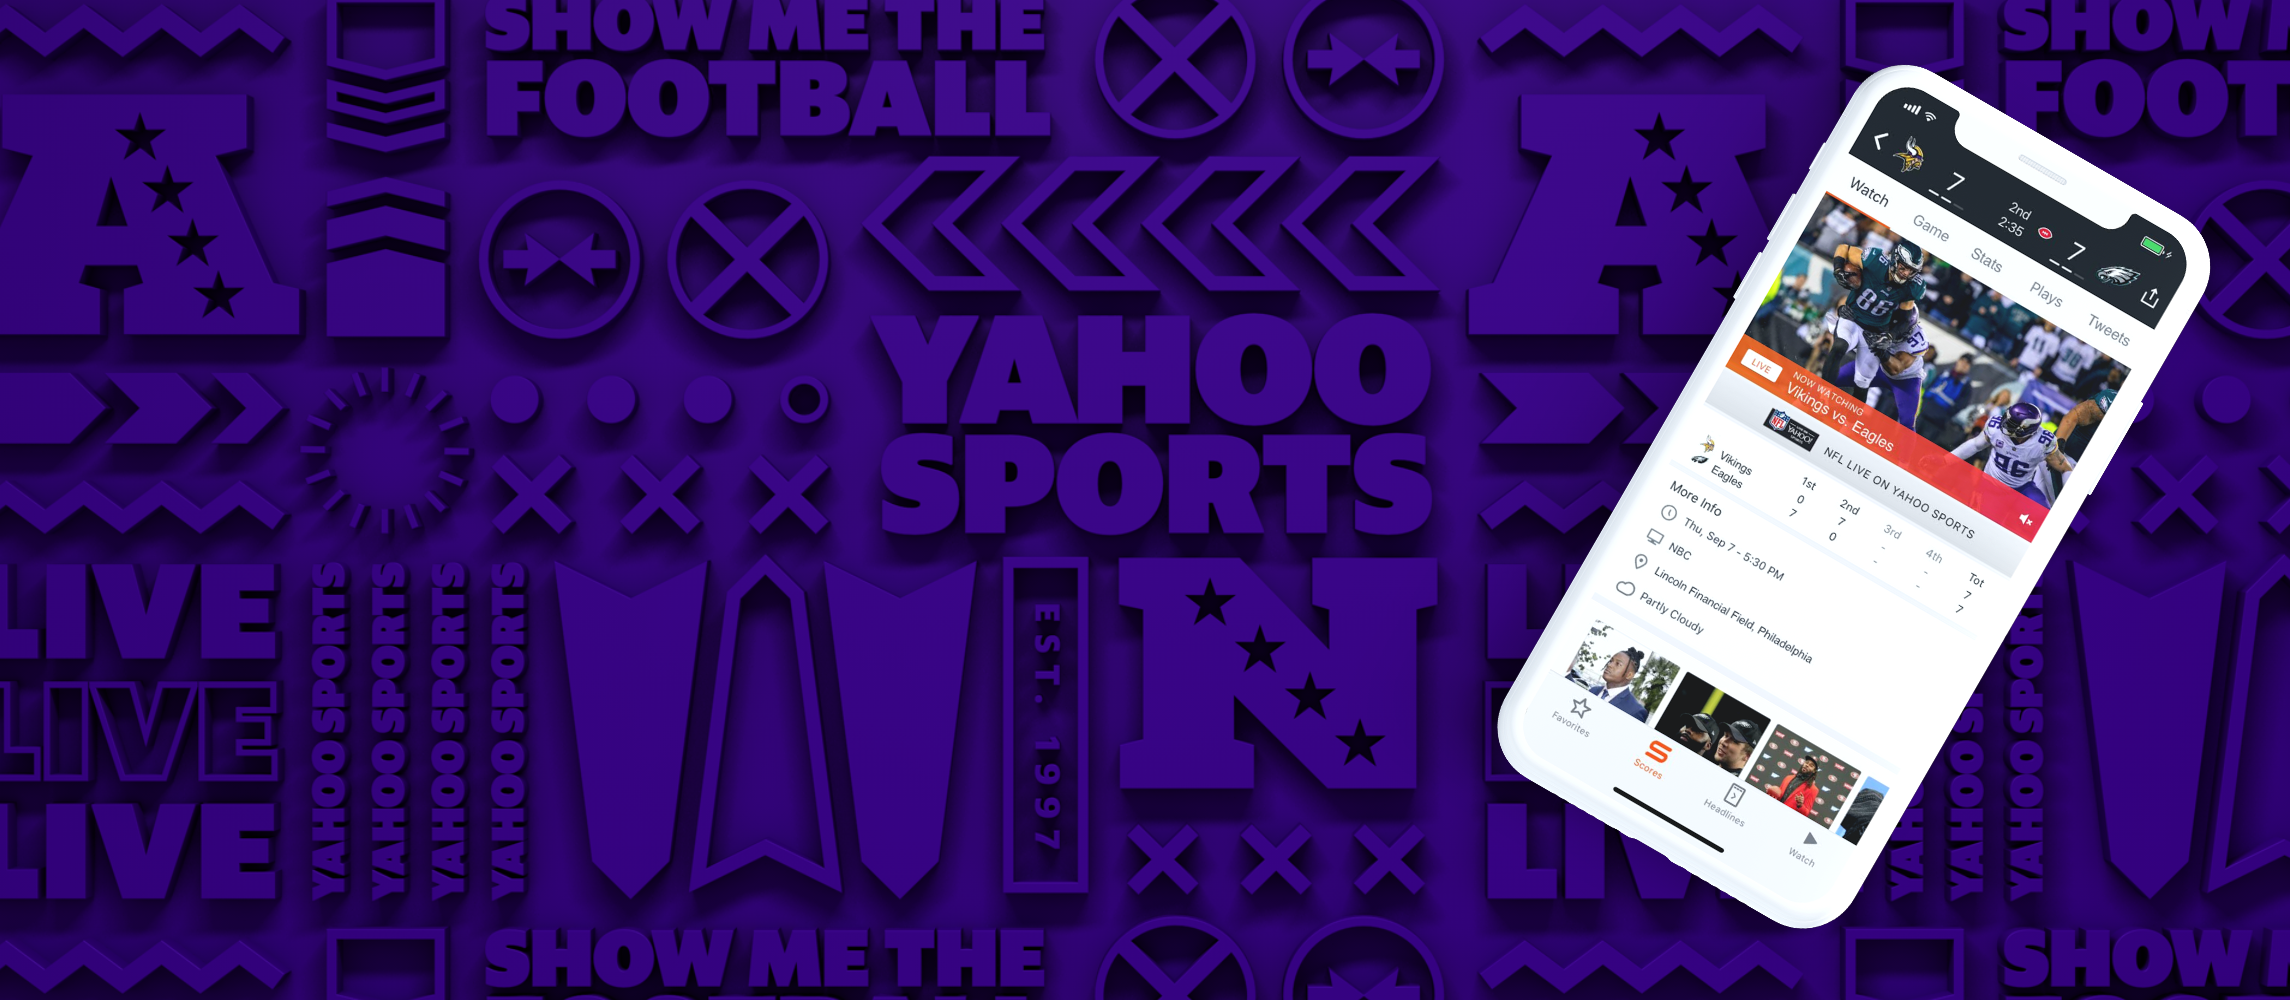 Live NFL games on the Yahoo Sports app